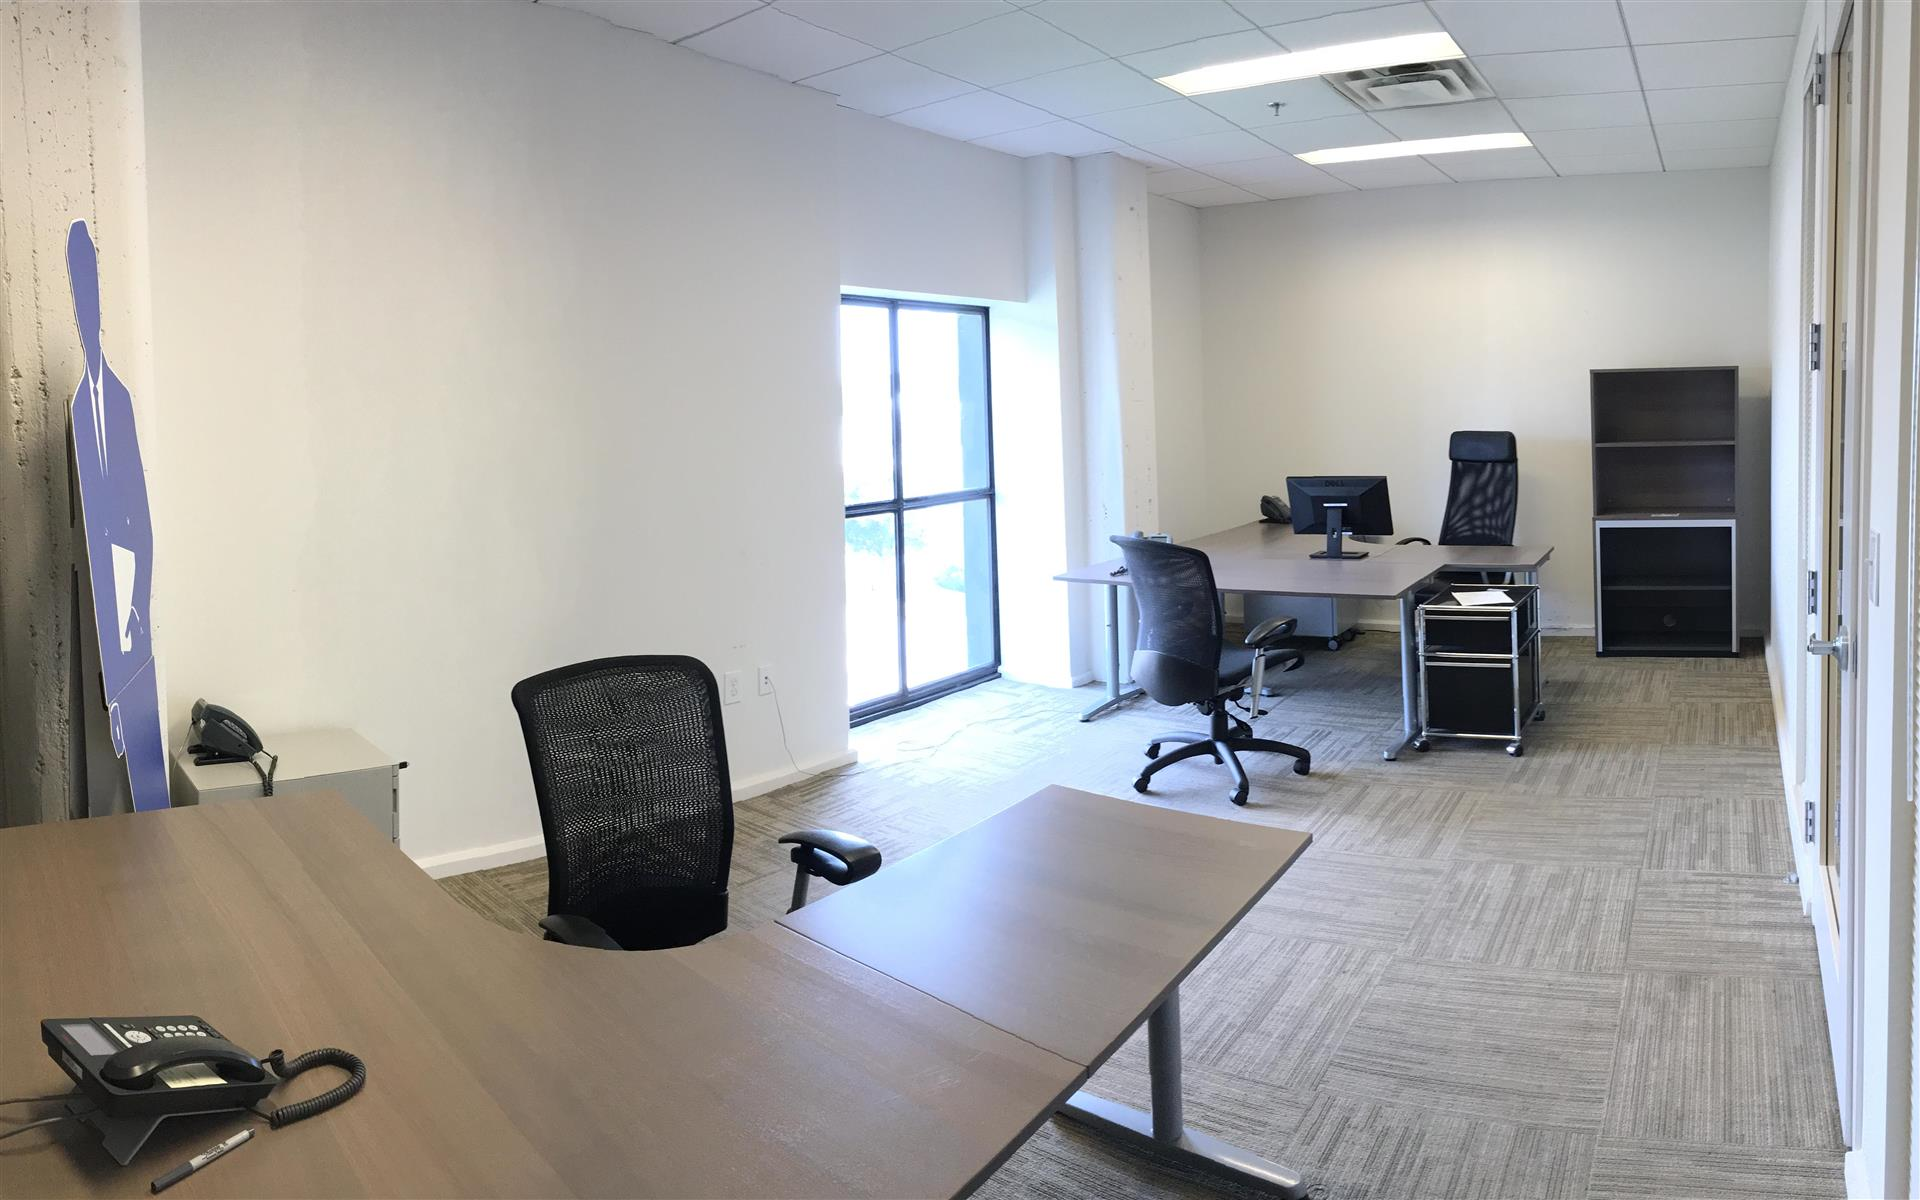 German American Chamber of Commerce of the Southern US - Suite 300 - Team Office